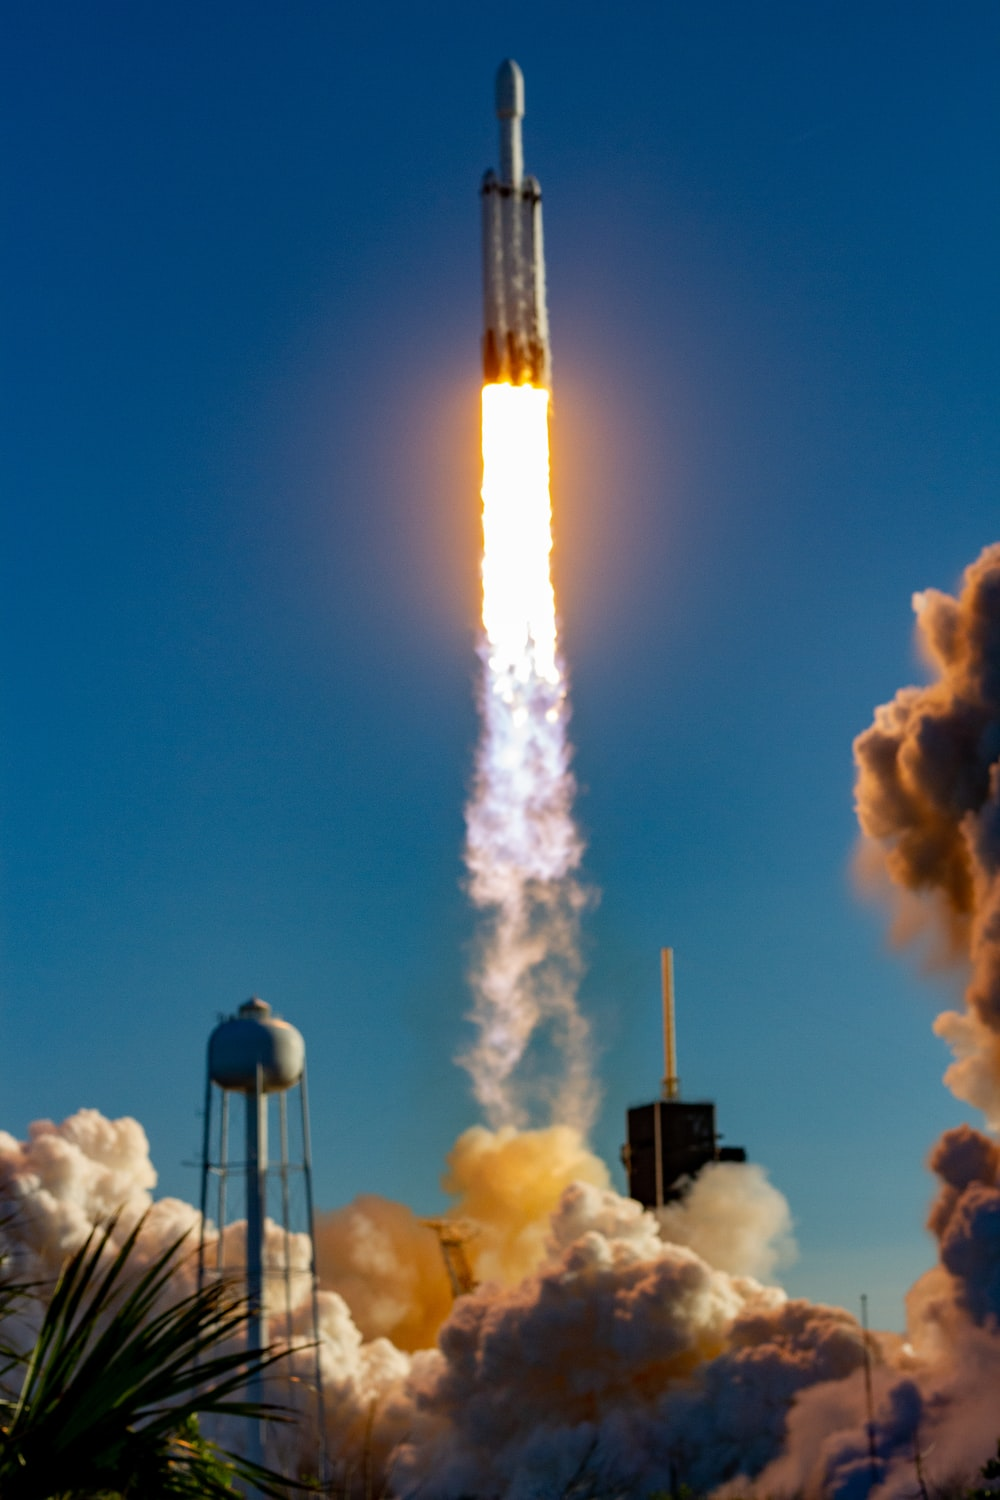 750 Spacex Pictures Hd Download Free Images On Unsplash